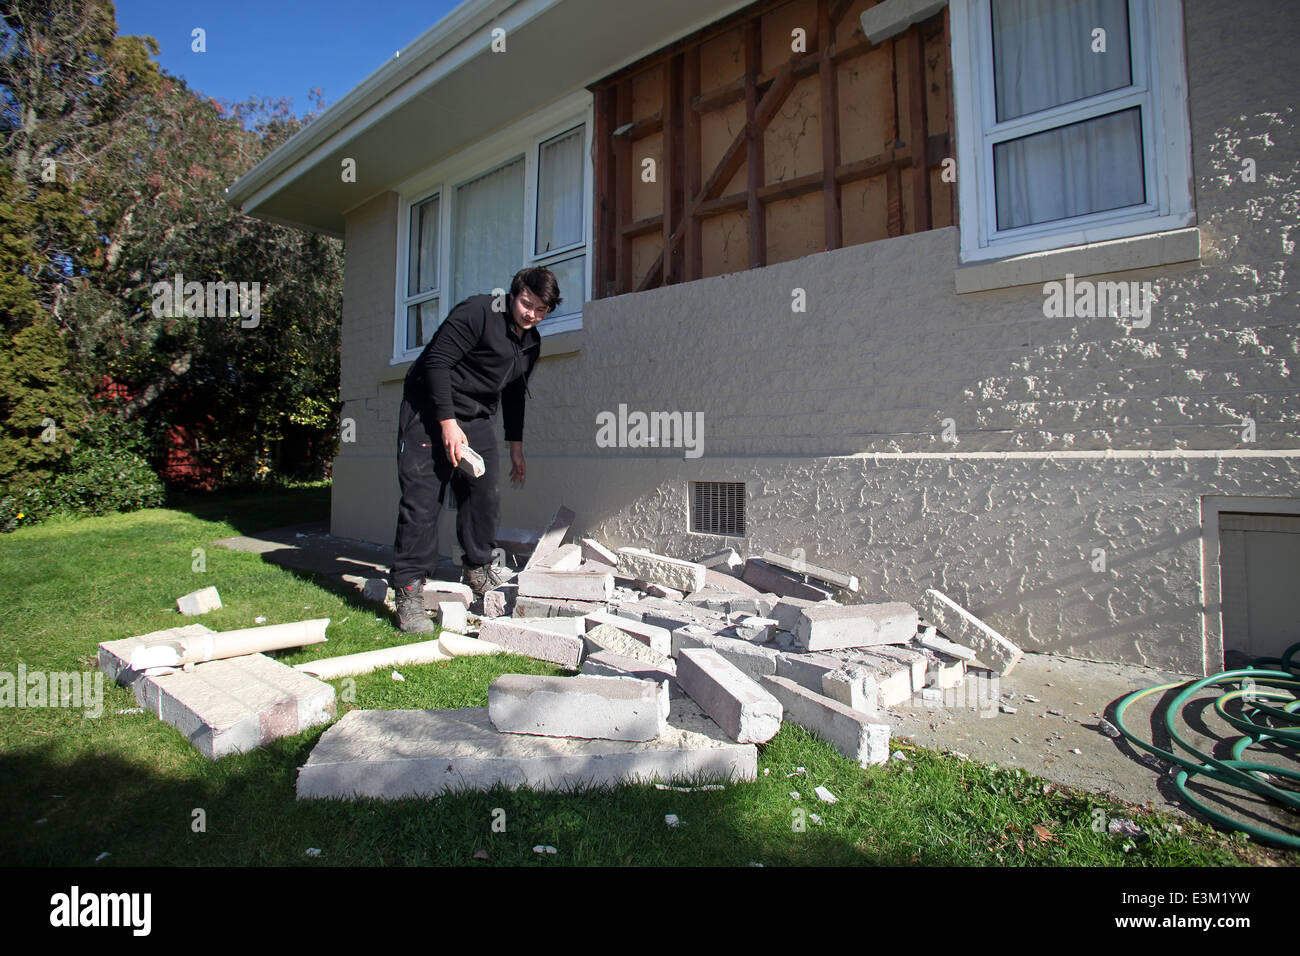 A man tidies after the July 2013 earthquake that struck close to Seddon brought part of his wall down, Marlborough, - Stock Image